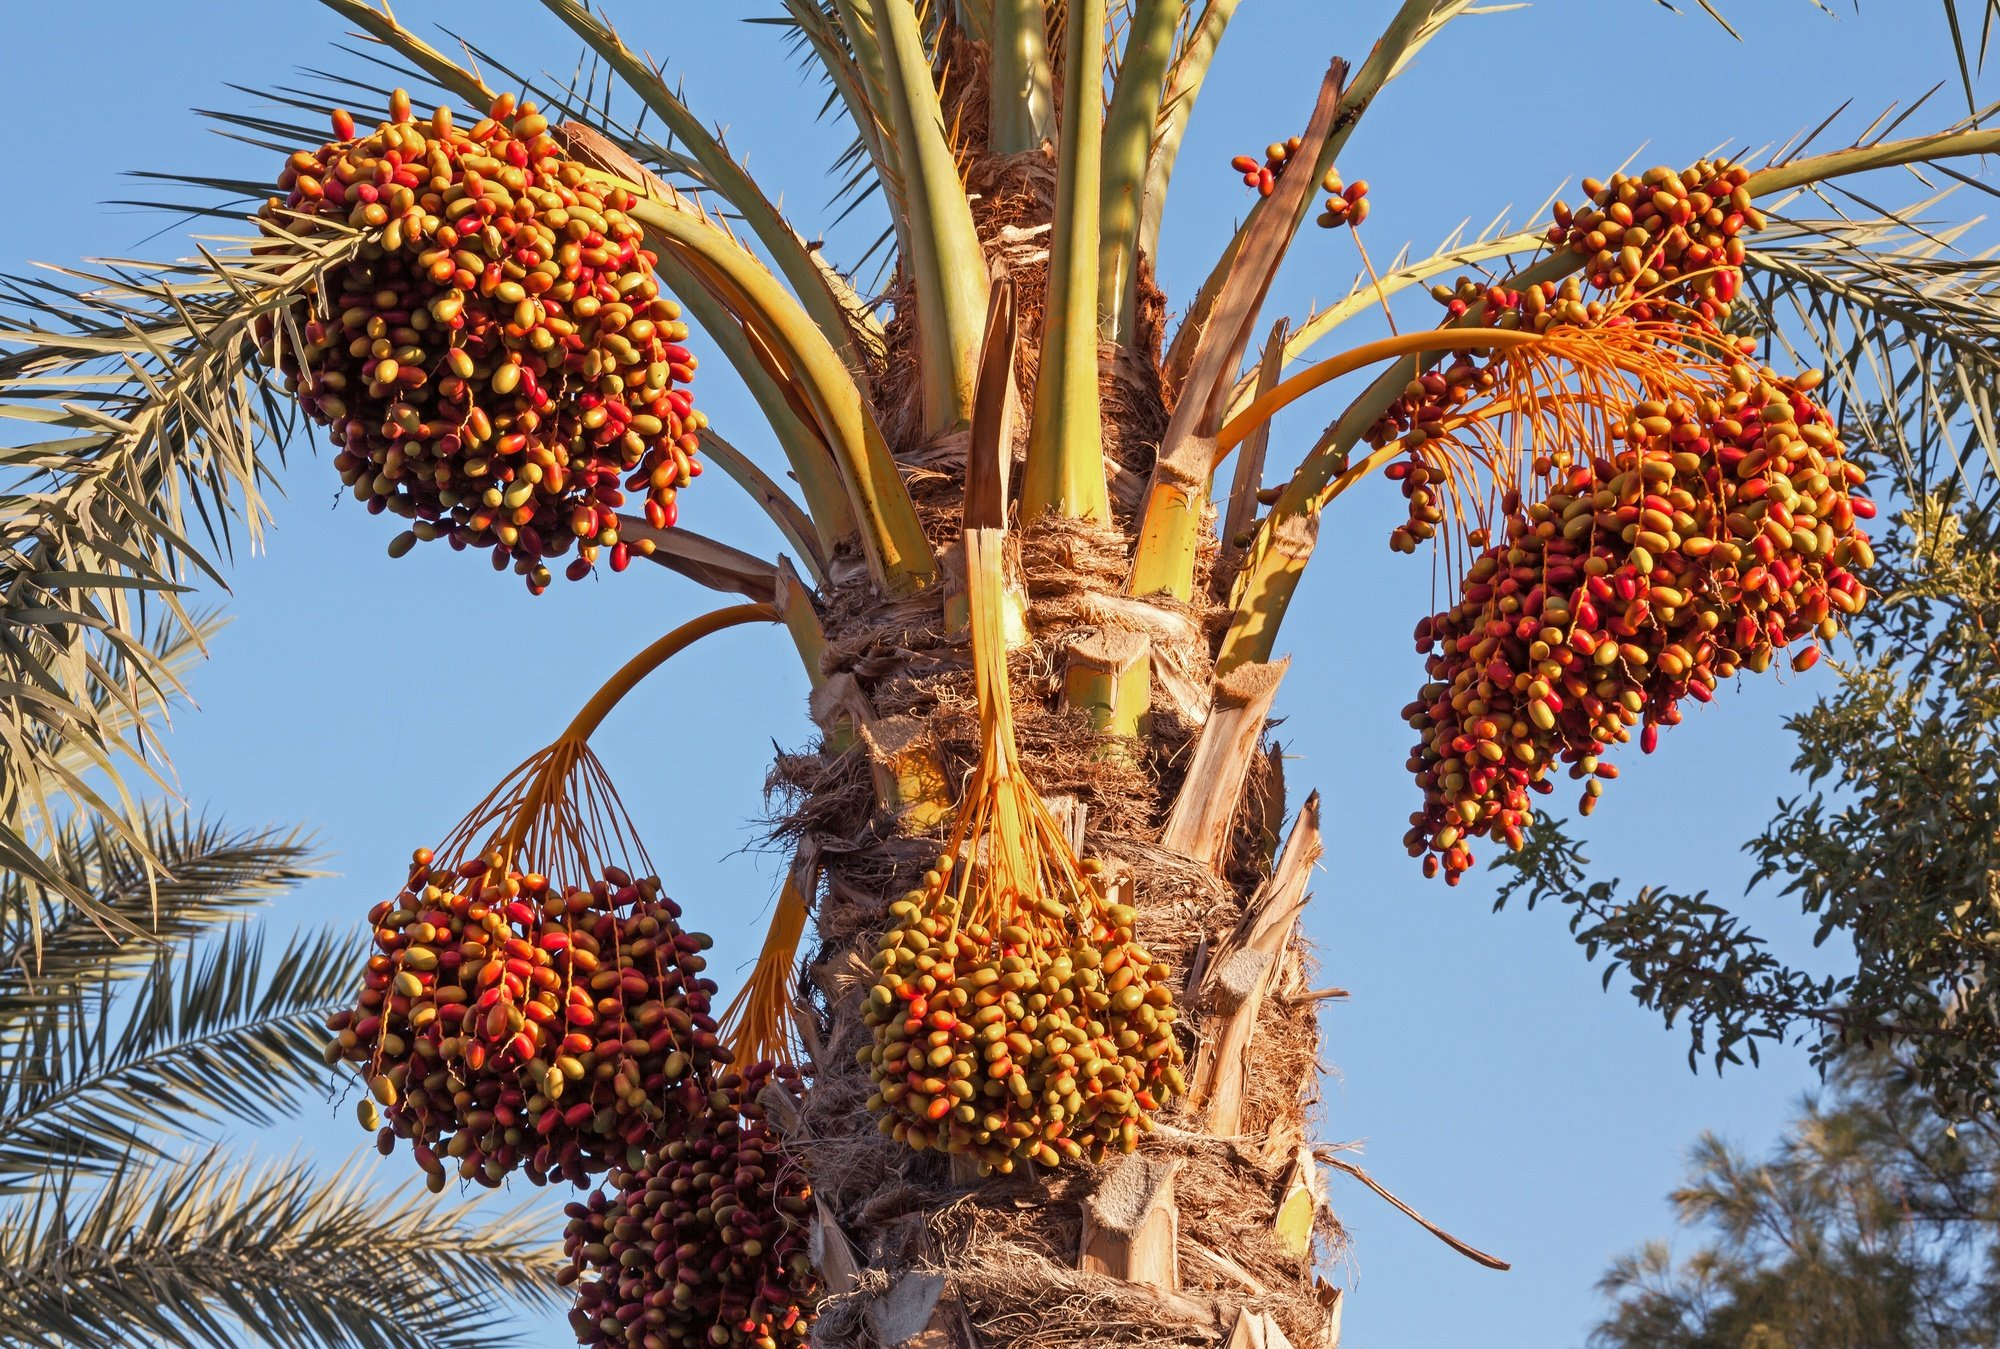 Date palm with ripe dates